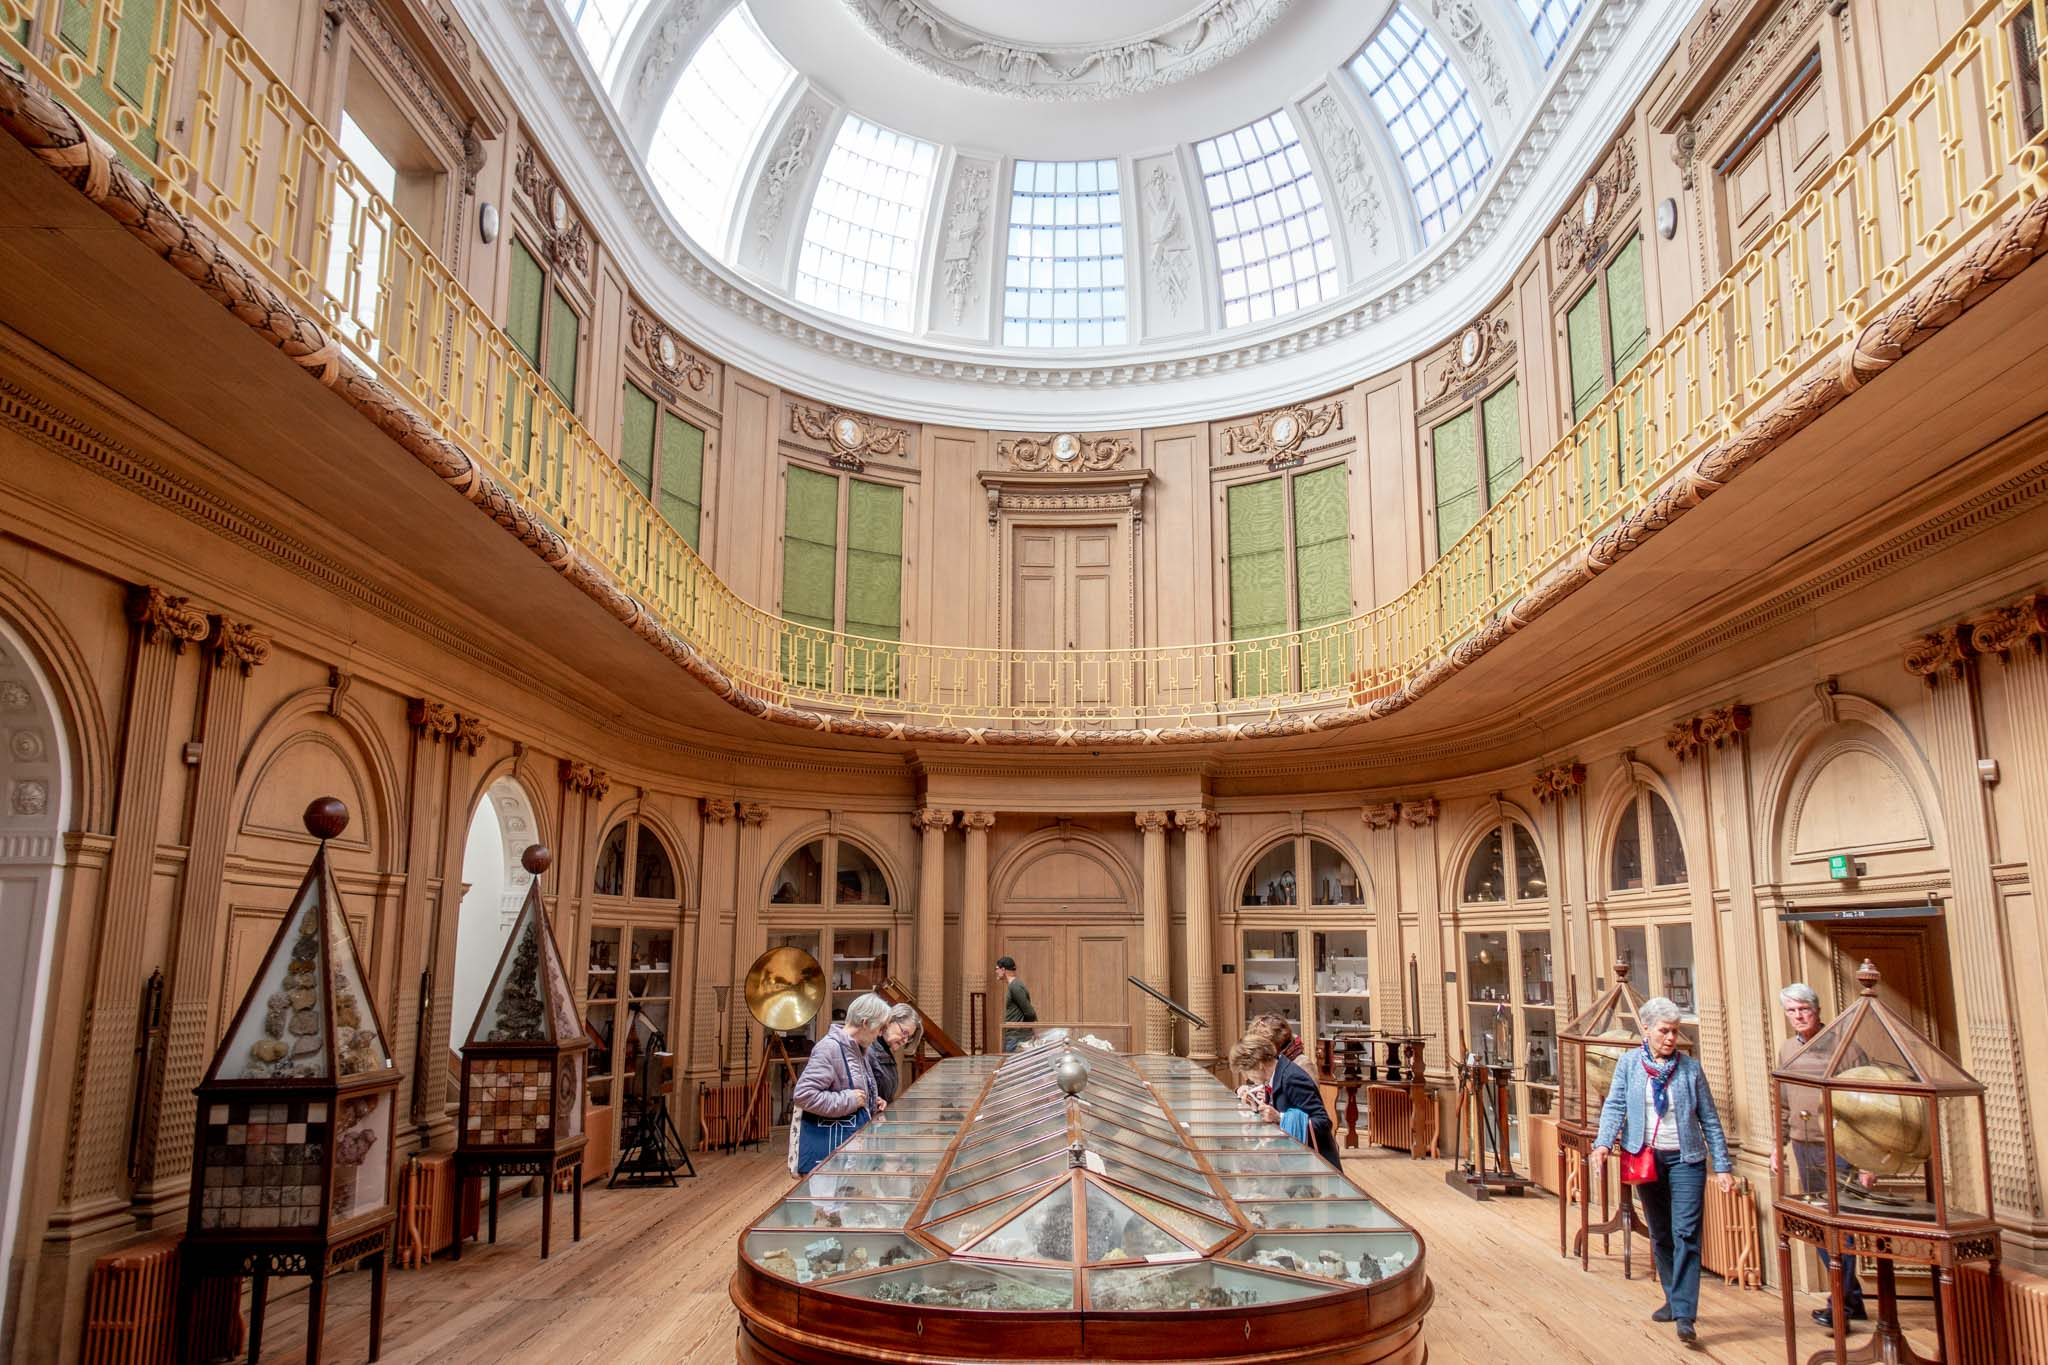 Oval Room with display case in the middle at Teylers Museum